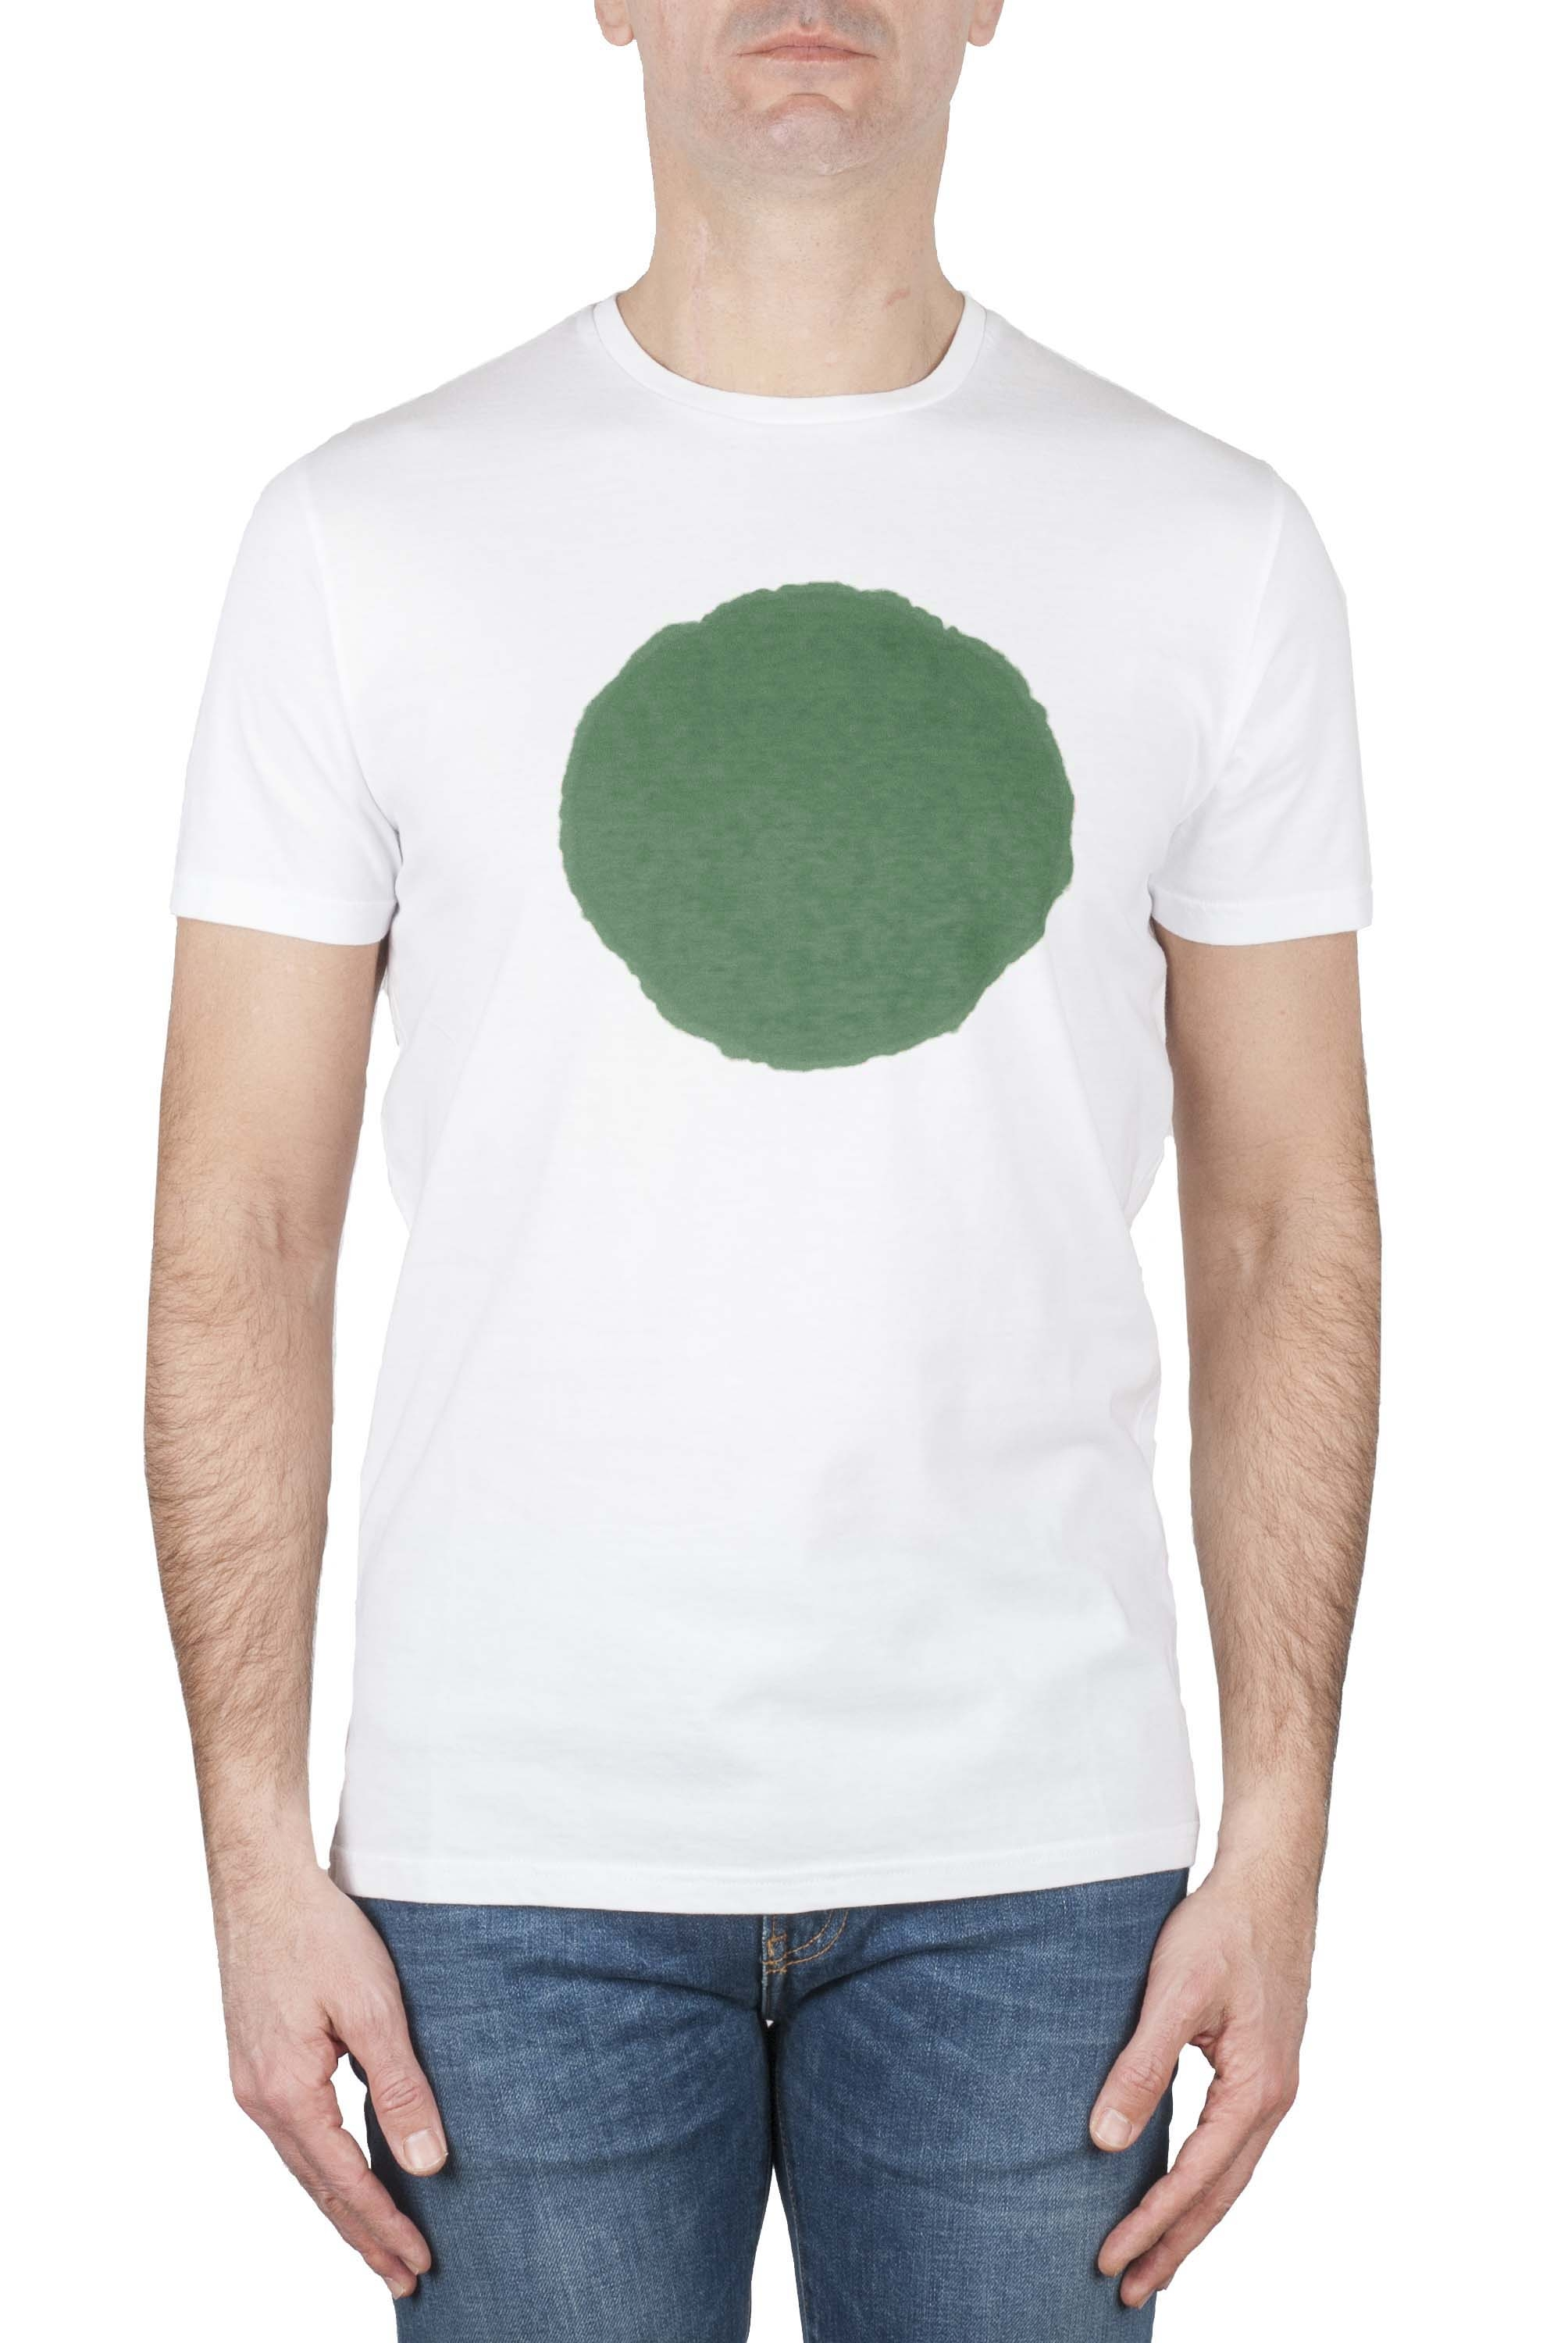 SBU 02847_2020SS Classic short sleeve cotton round neck t-shirt green and white printed graphic 01